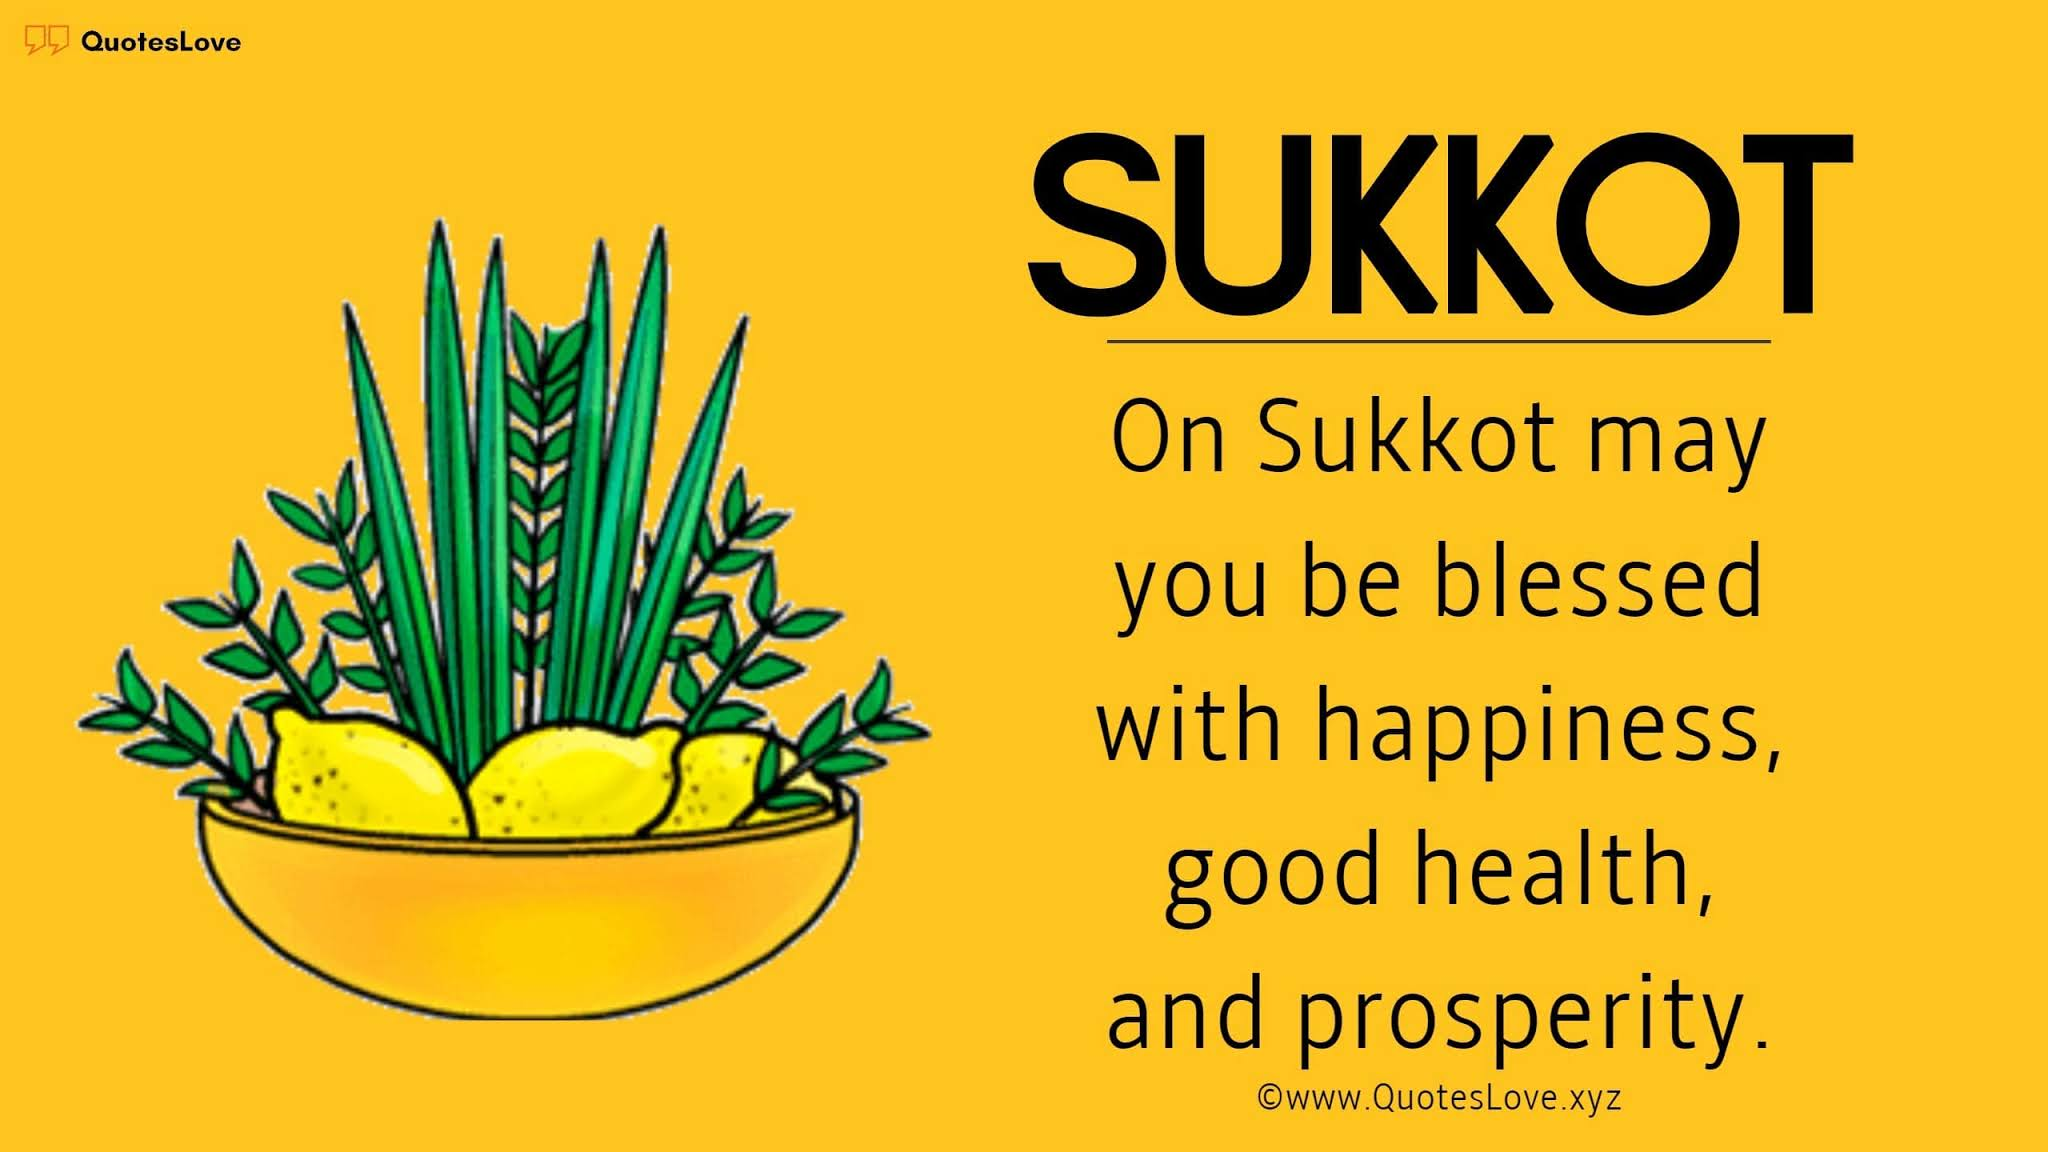 Sukkot Wishes, Quotes, Sayings, Greetings, Messages, Meaning, Images, Pictures, Posters